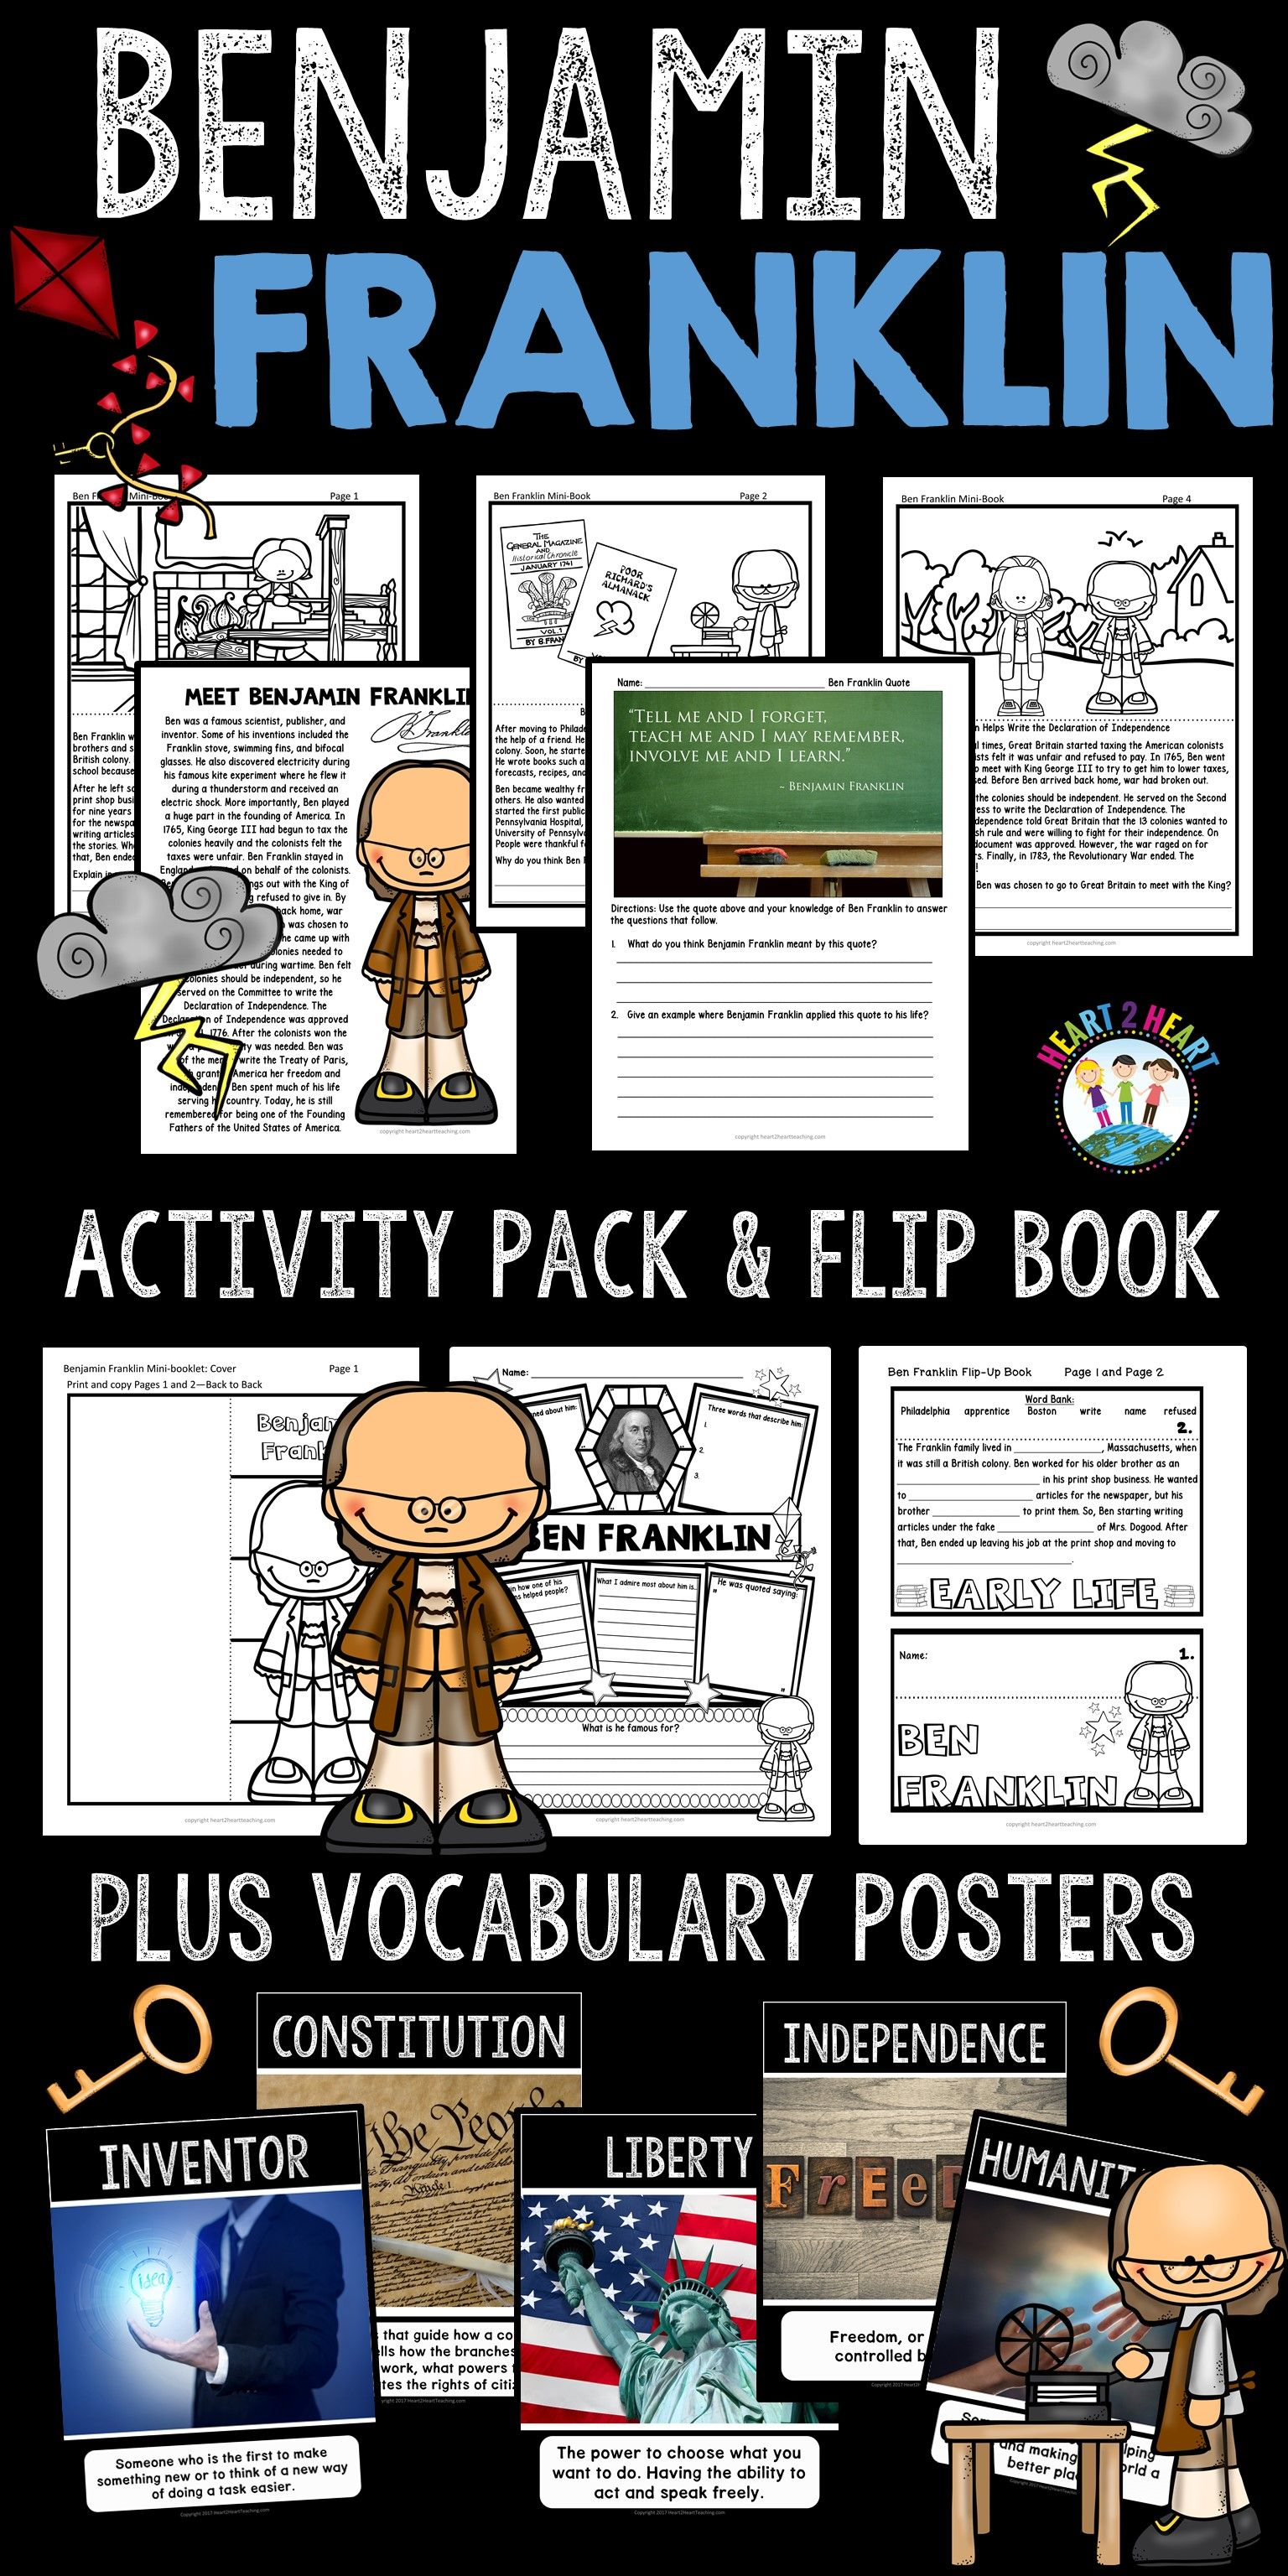 The Life Story Of Benjamin Franklin Activity Pack